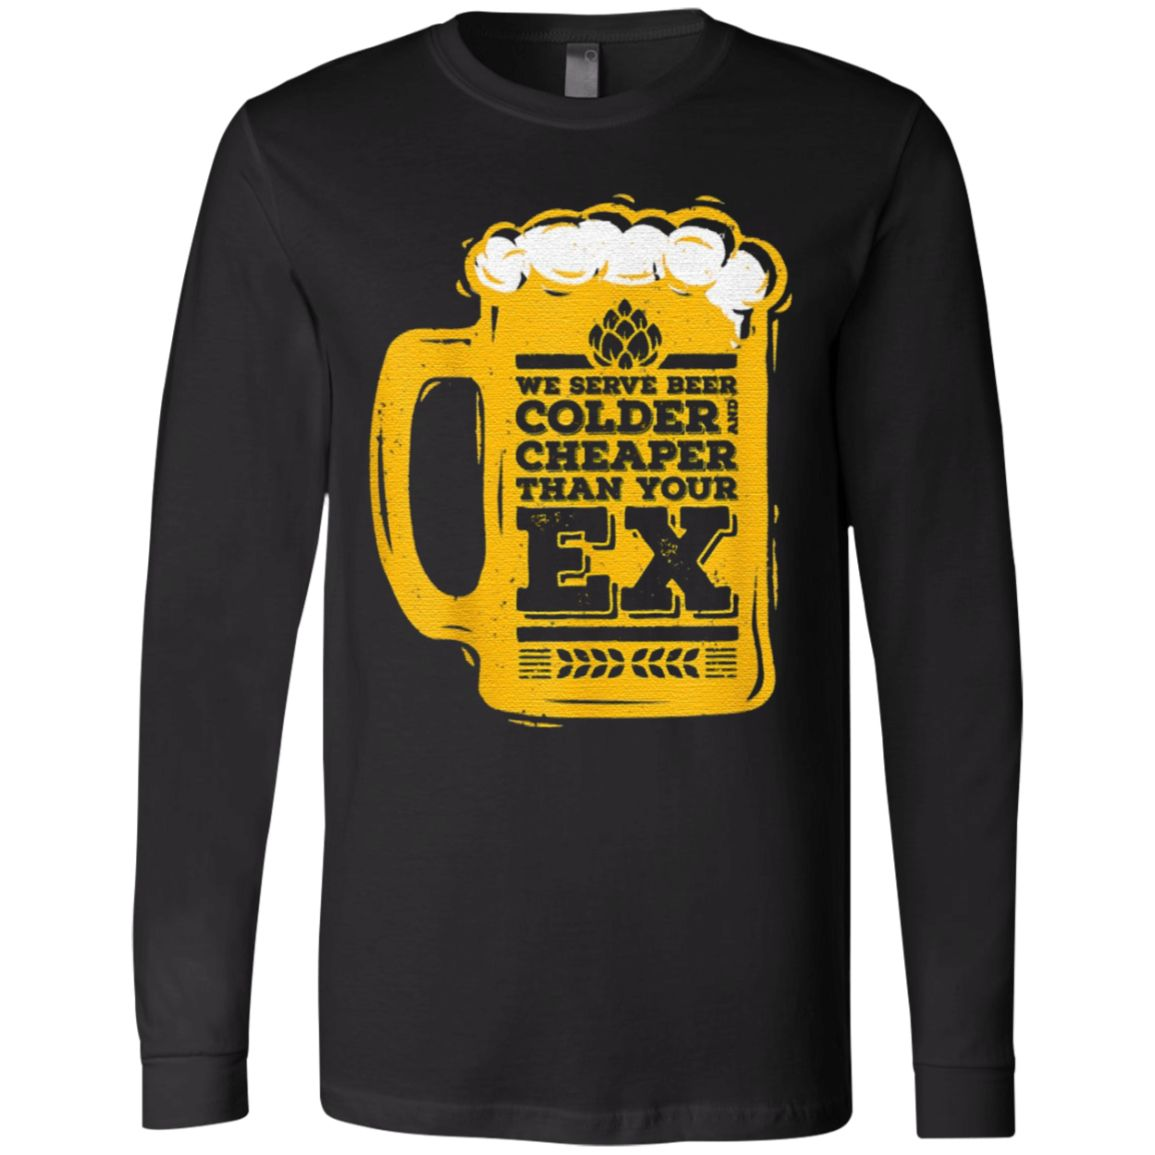 We Serve Beer Colder Cheaper Than Your Ex T-Shirt